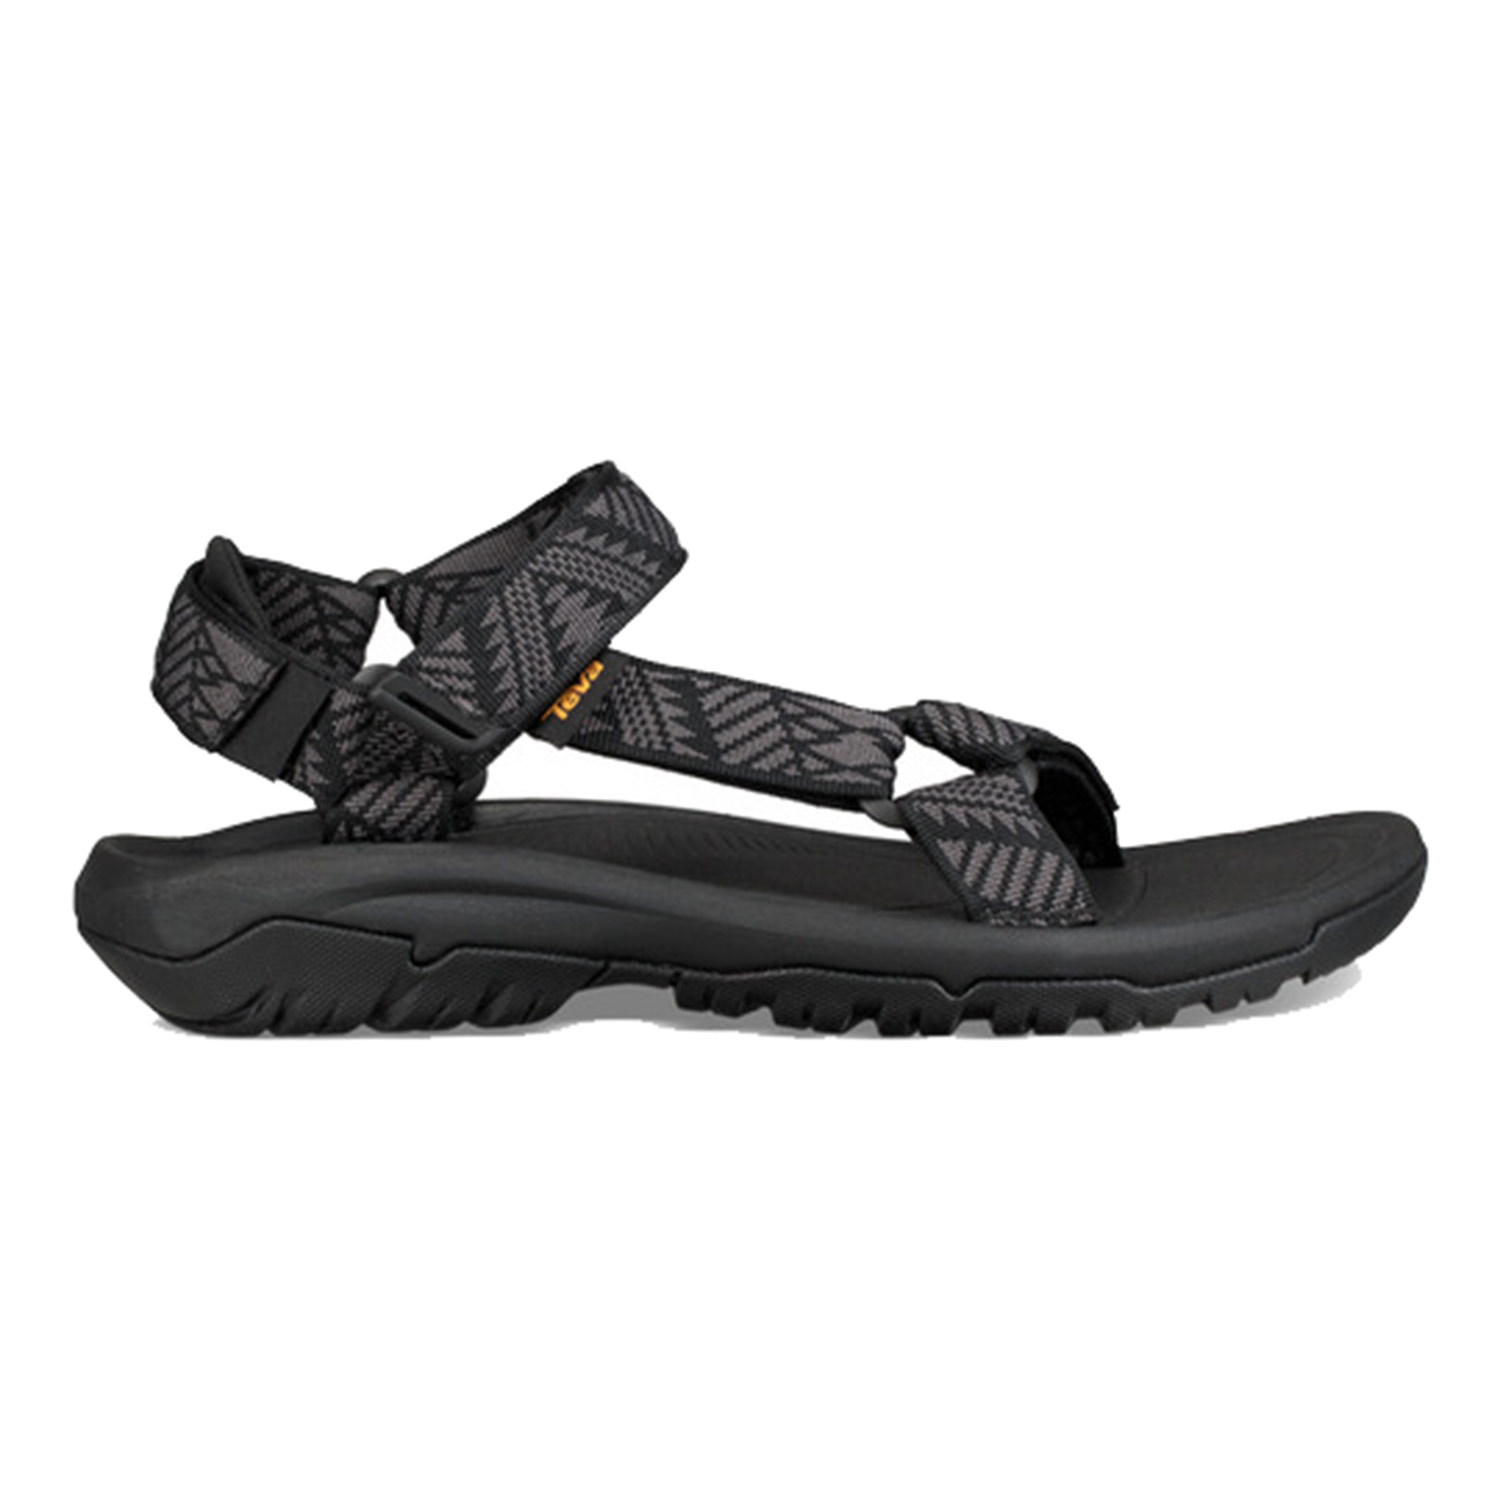 9deee3ffd9e2 Men s Hurricane XLT 2 Sandals Enlarged view of picture